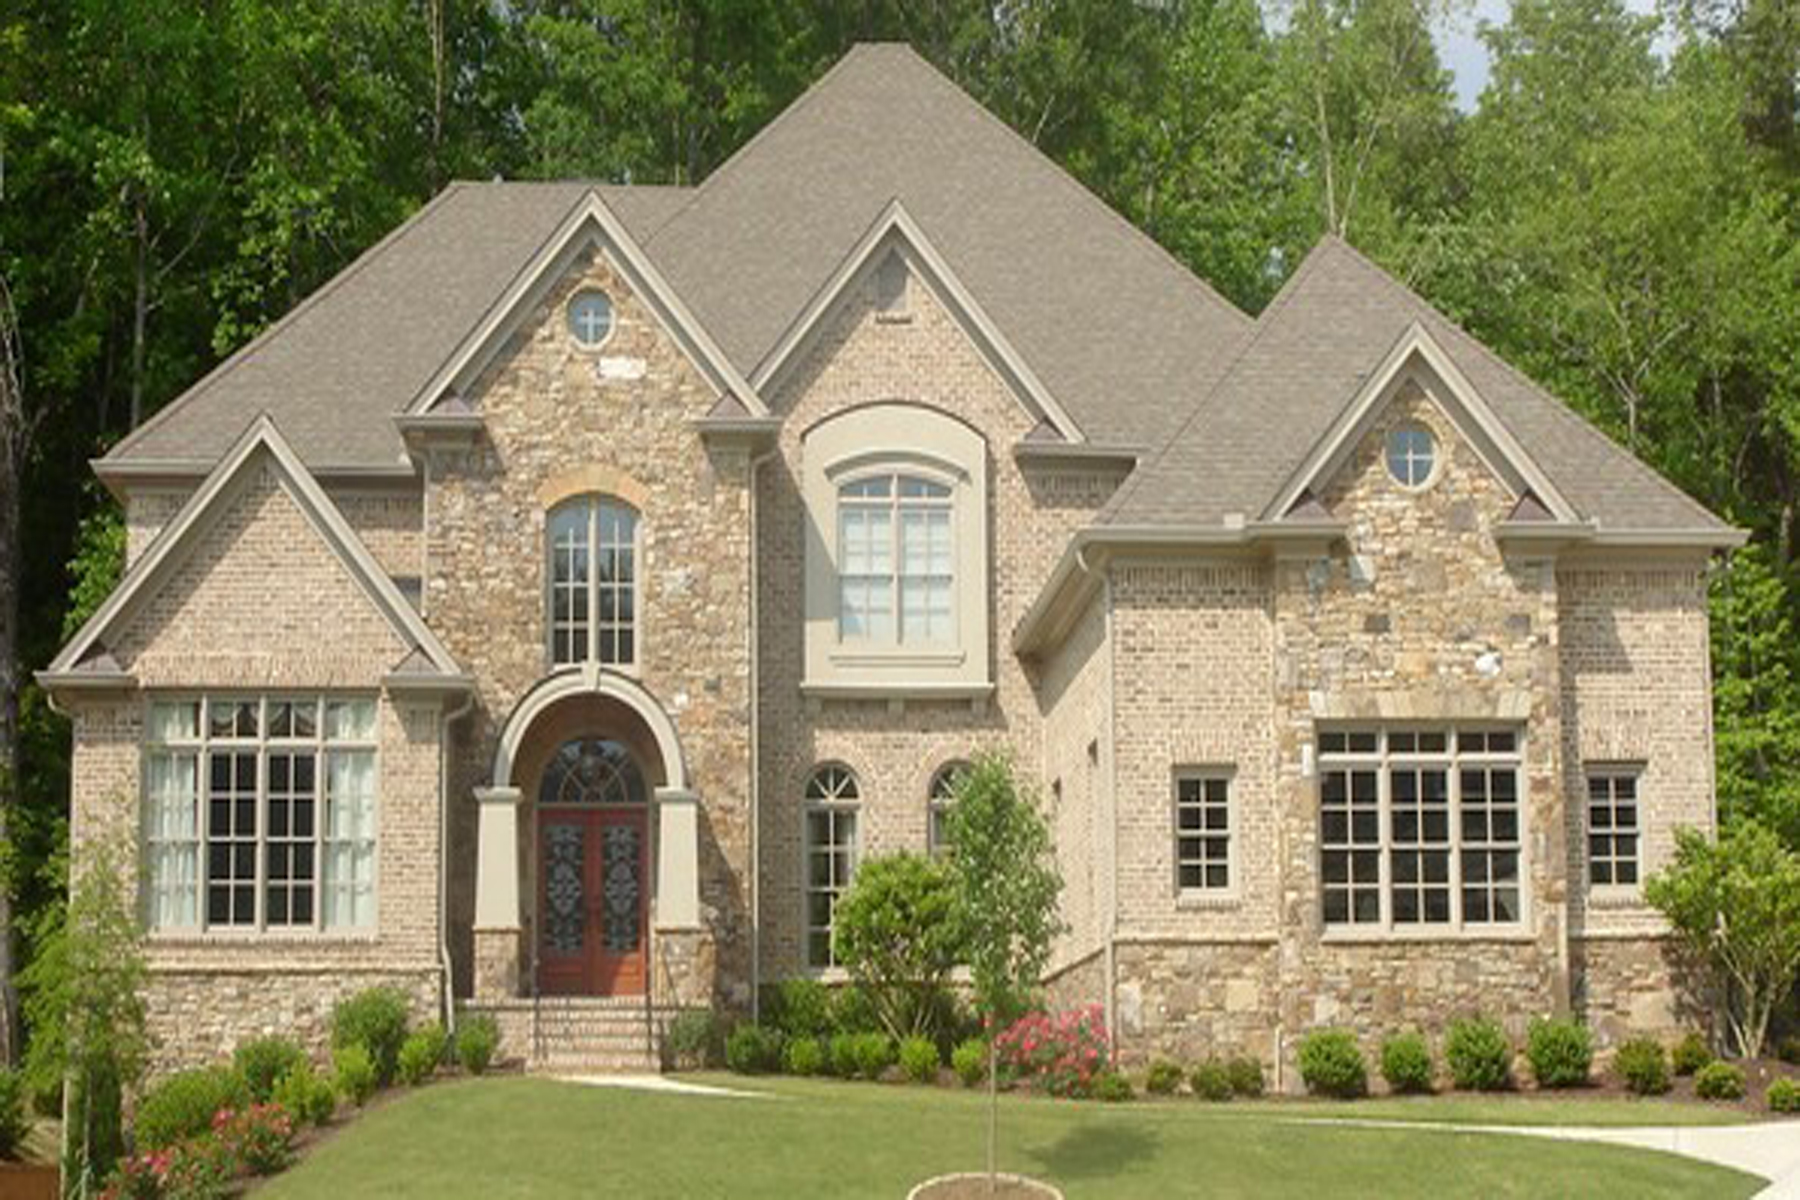 Villa per Vendita alle ore Stately Brick Residence In Sought After Gated Community Of Riverside Park 5015 Riverside Park Drive Roswell, Georgia, 30076 Stati Uniti